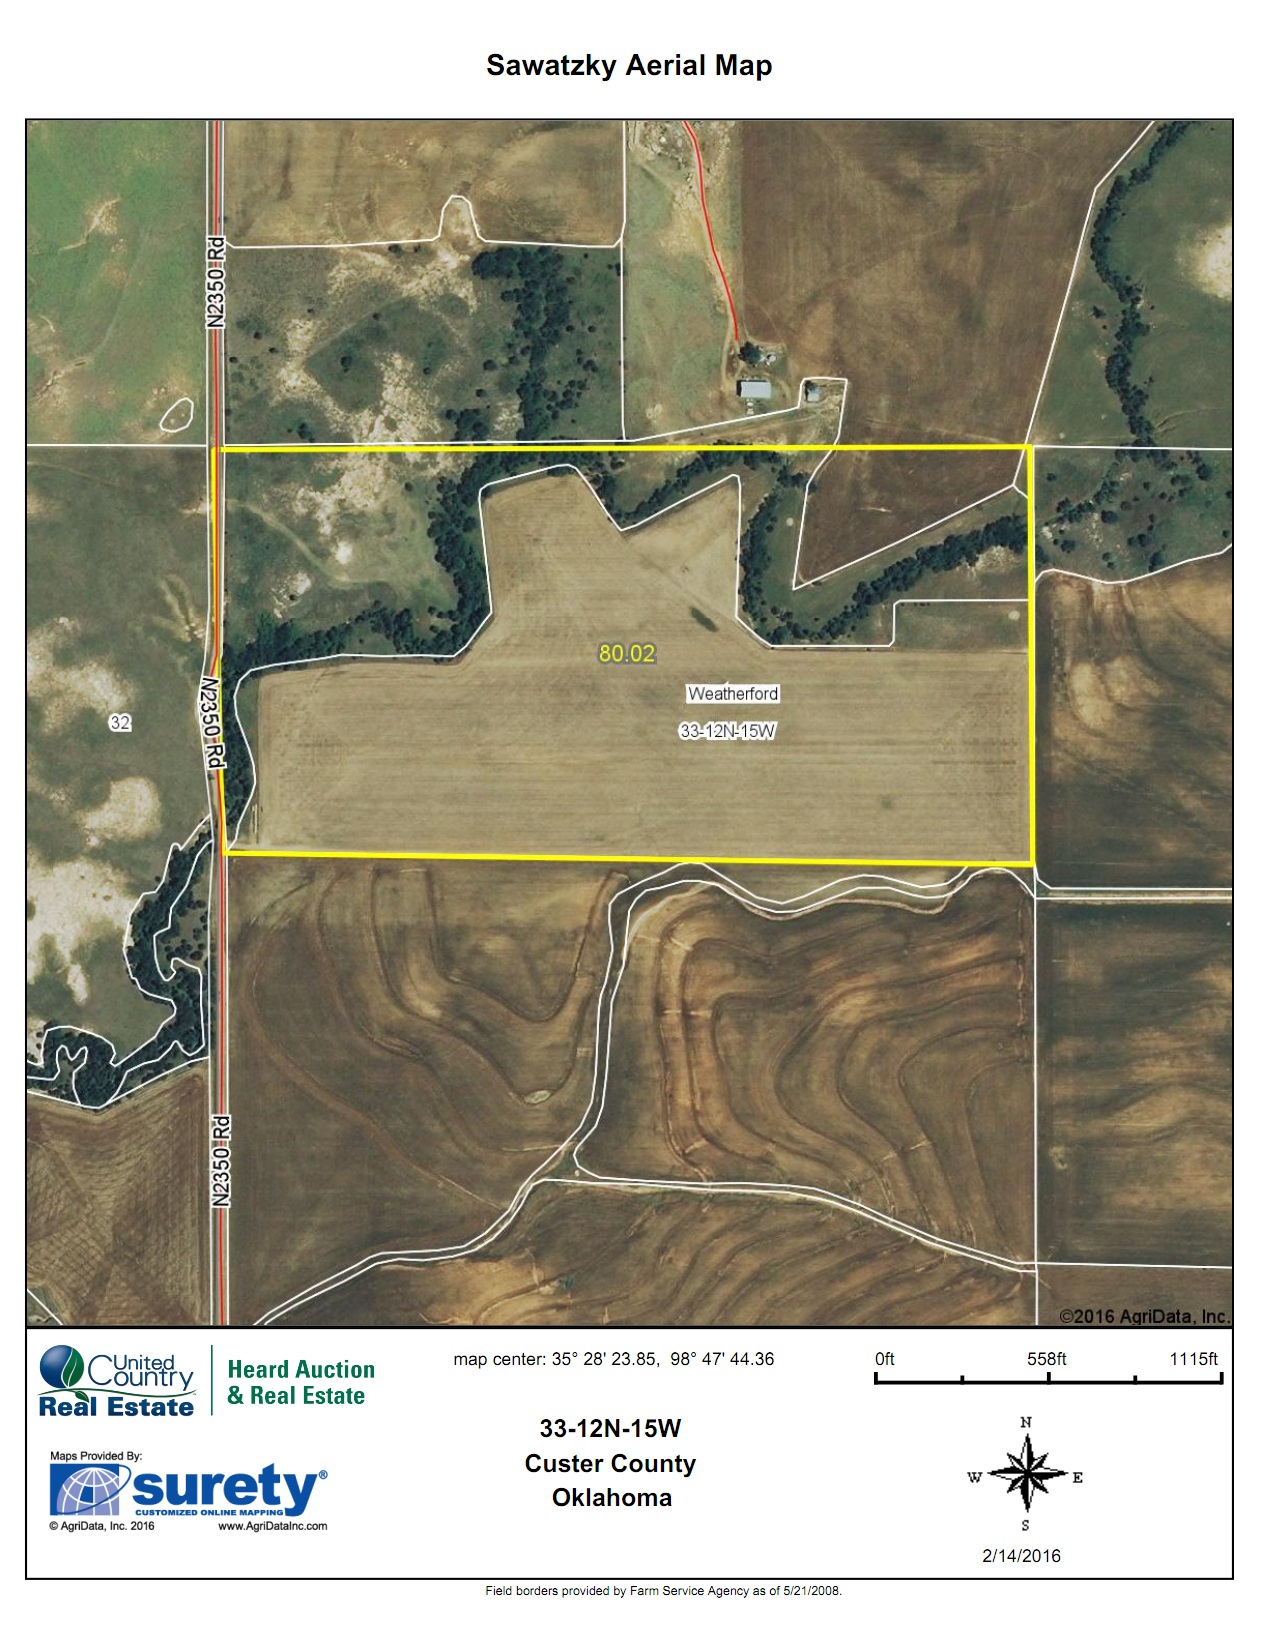 Oklahoma Farm for Sale, Custer County, Tract 5